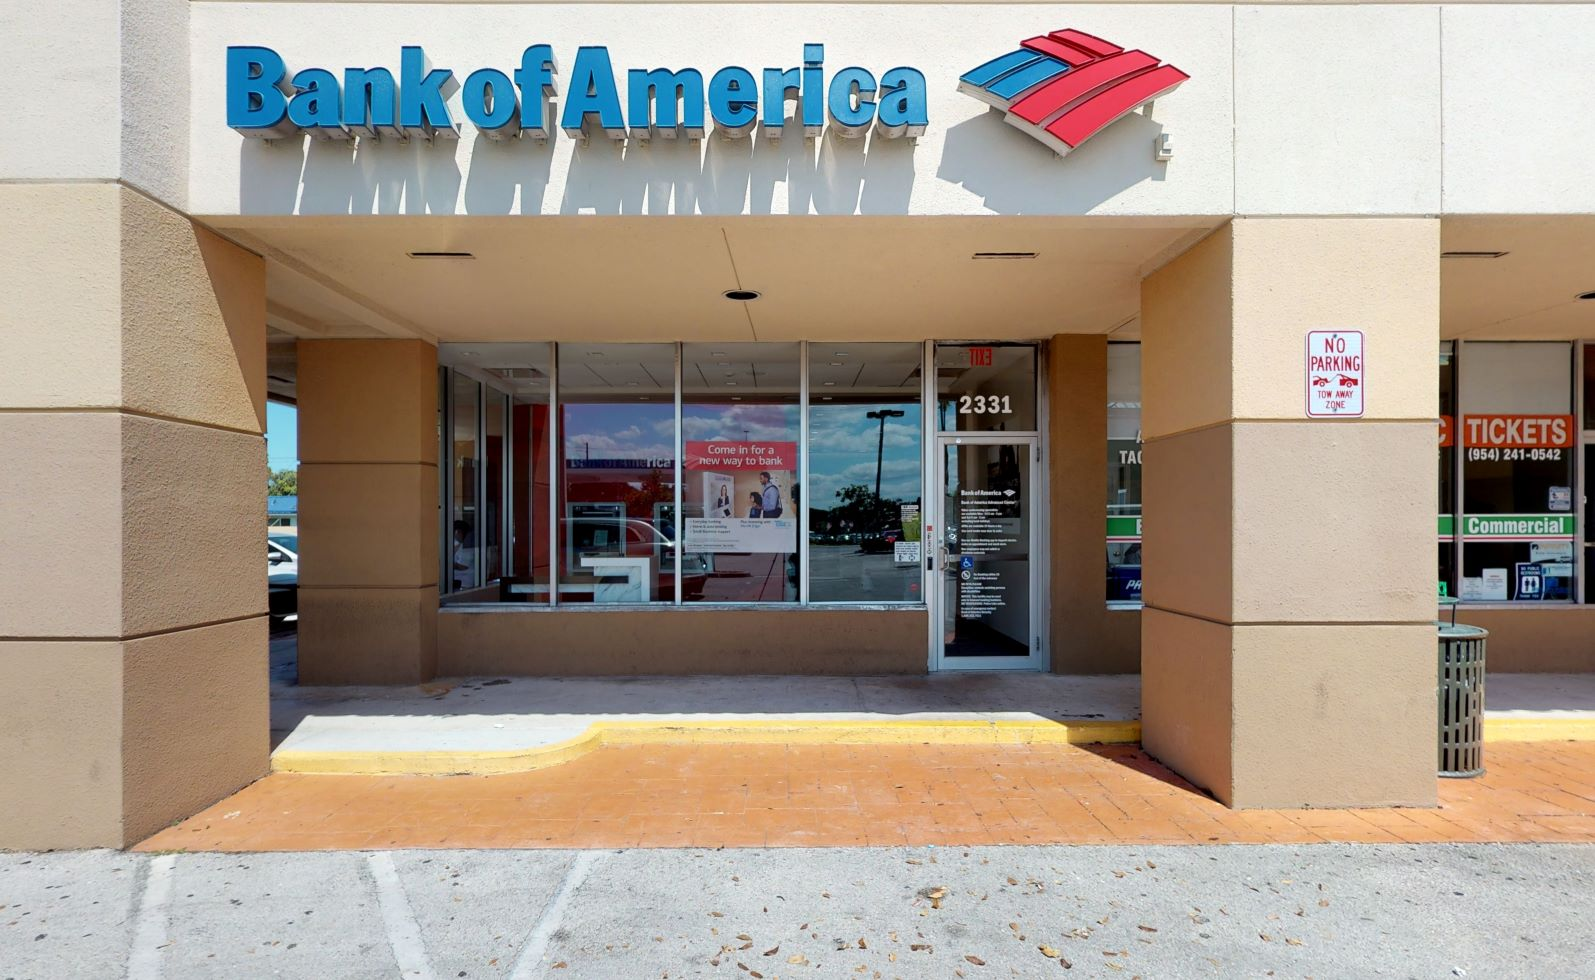 Bank of America Advanced Center with walk-up ATM   2331 N 60th Ave, Hollywood, FL 33021